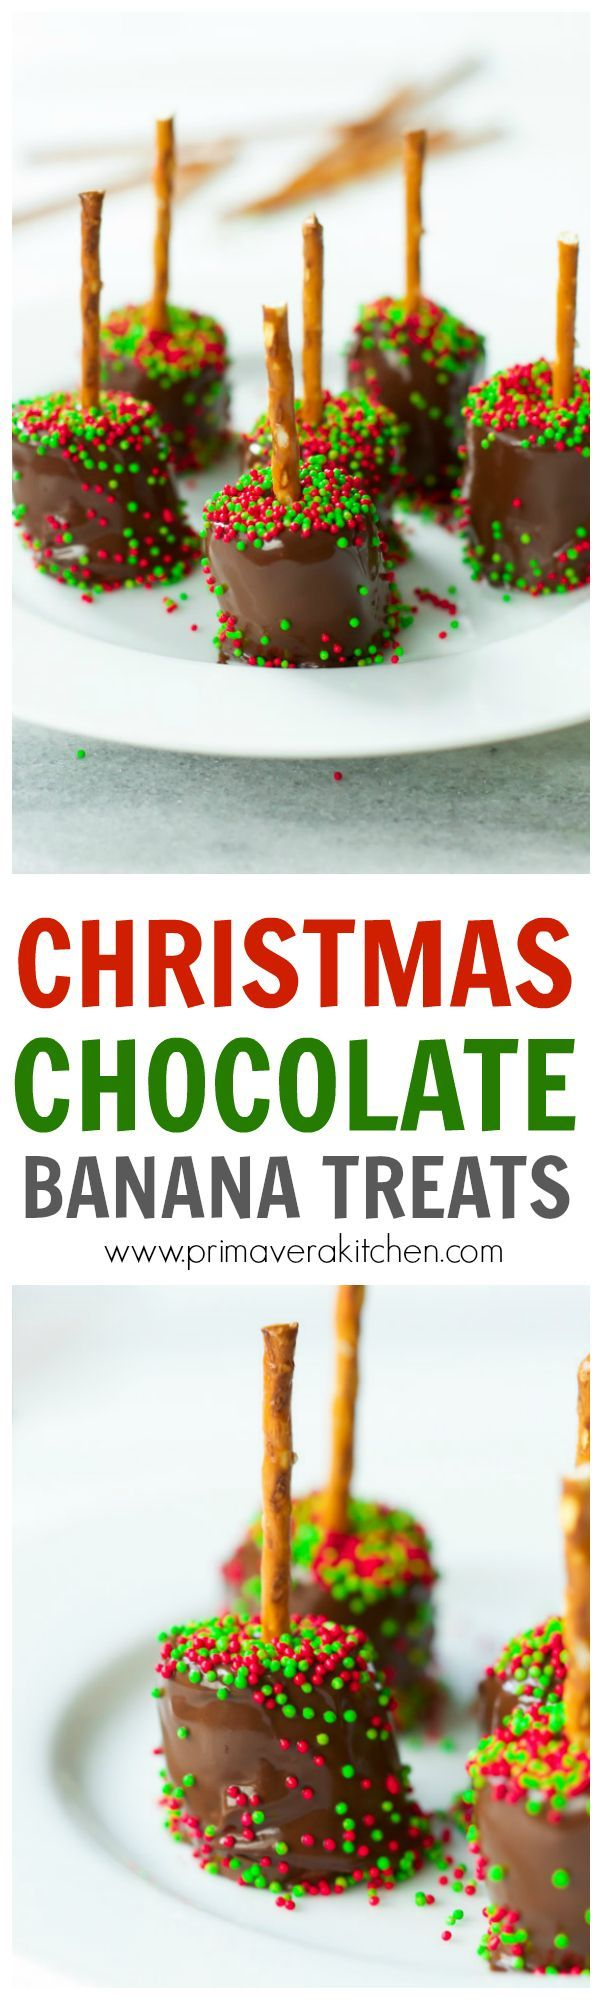 4-Ingredient Christmas Chocolate Banana Treats for the win!!! Seriously, if you want a super easy, quick, and delicious desert recipe for the Holidays, these banana chocolate treats are the perfect recipe for you. And they can be ready to go in less than 15 minutes! They are also gluten-free, vegan and paleo-friendly!